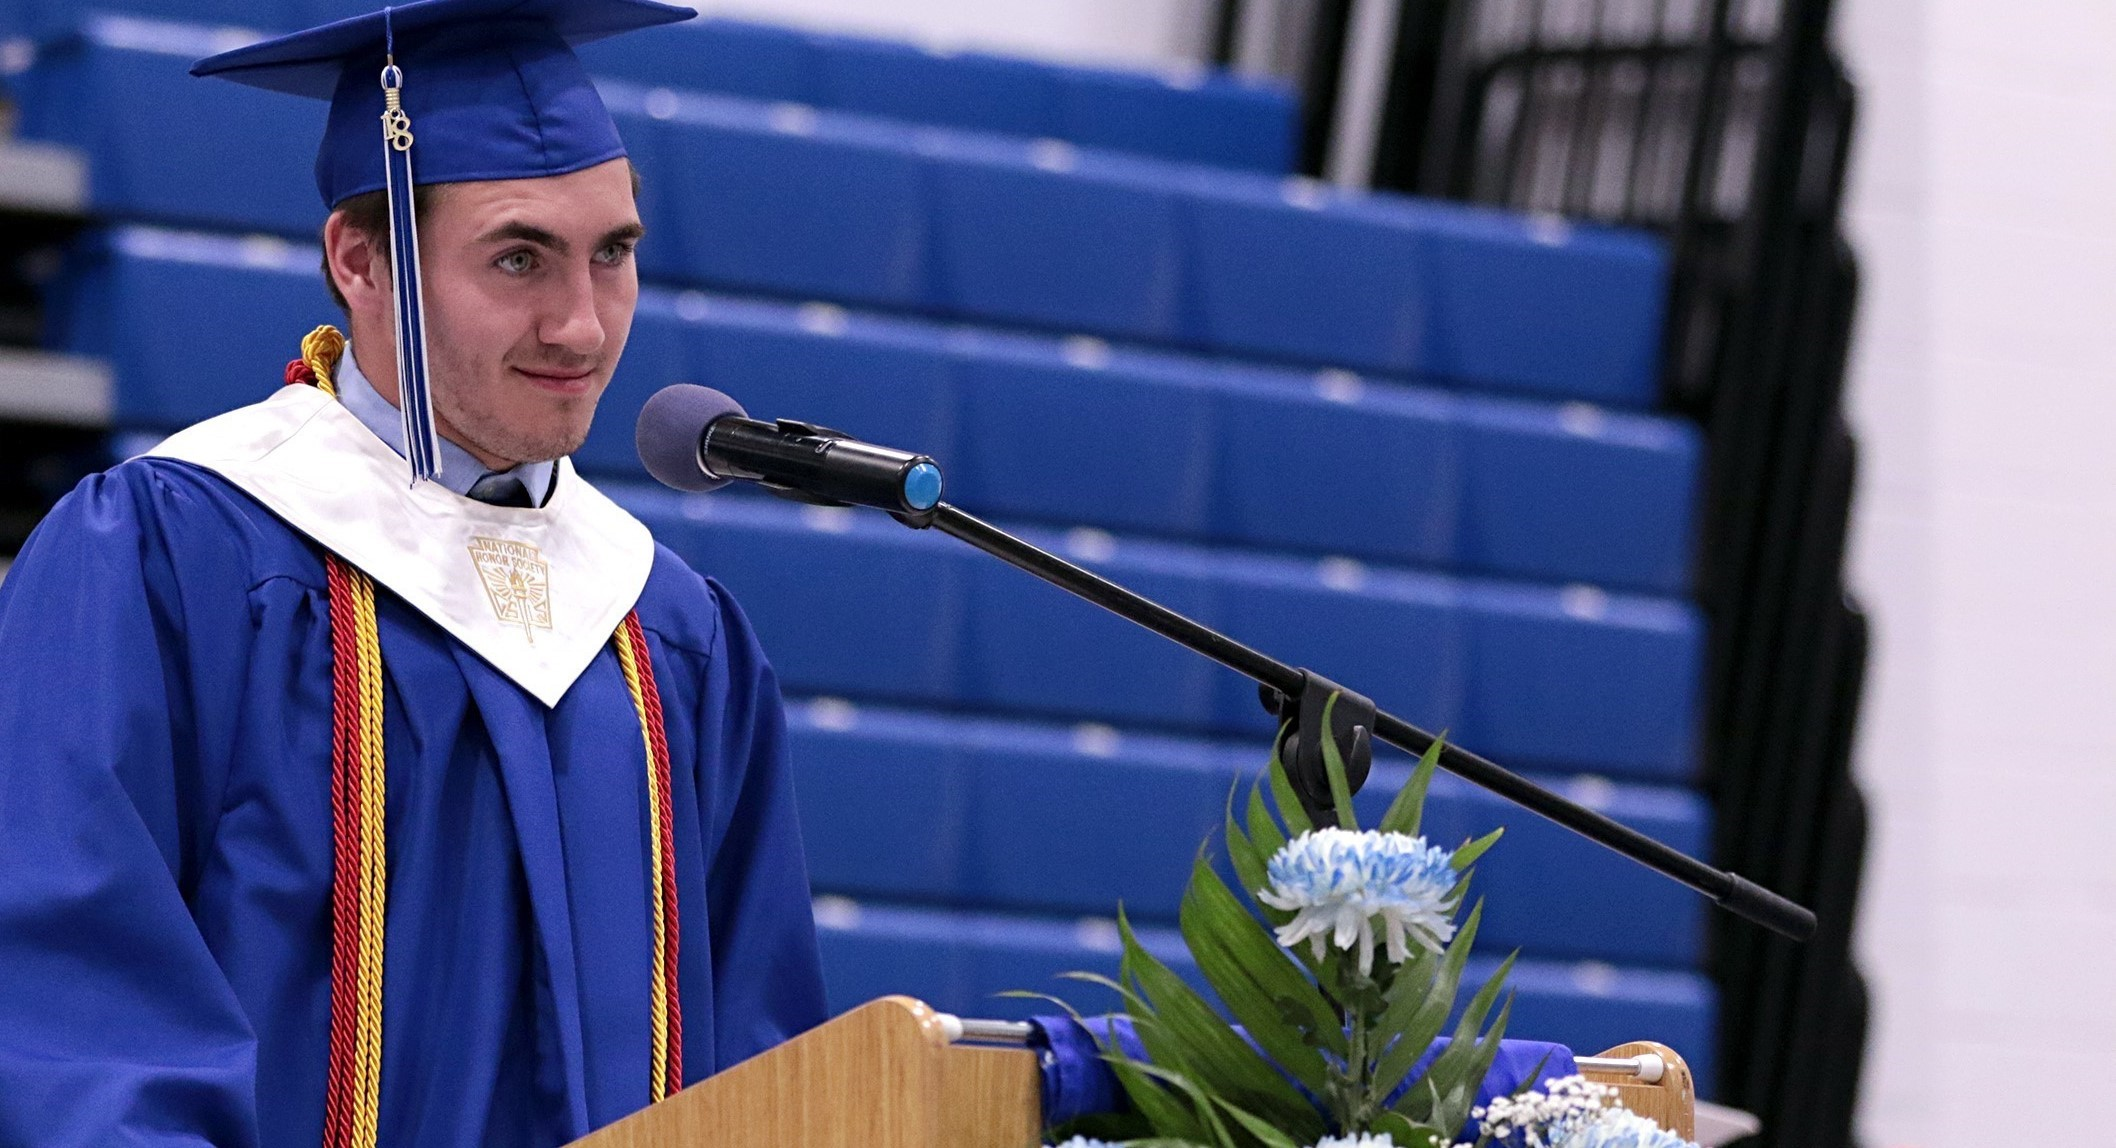 valedictorian speaking